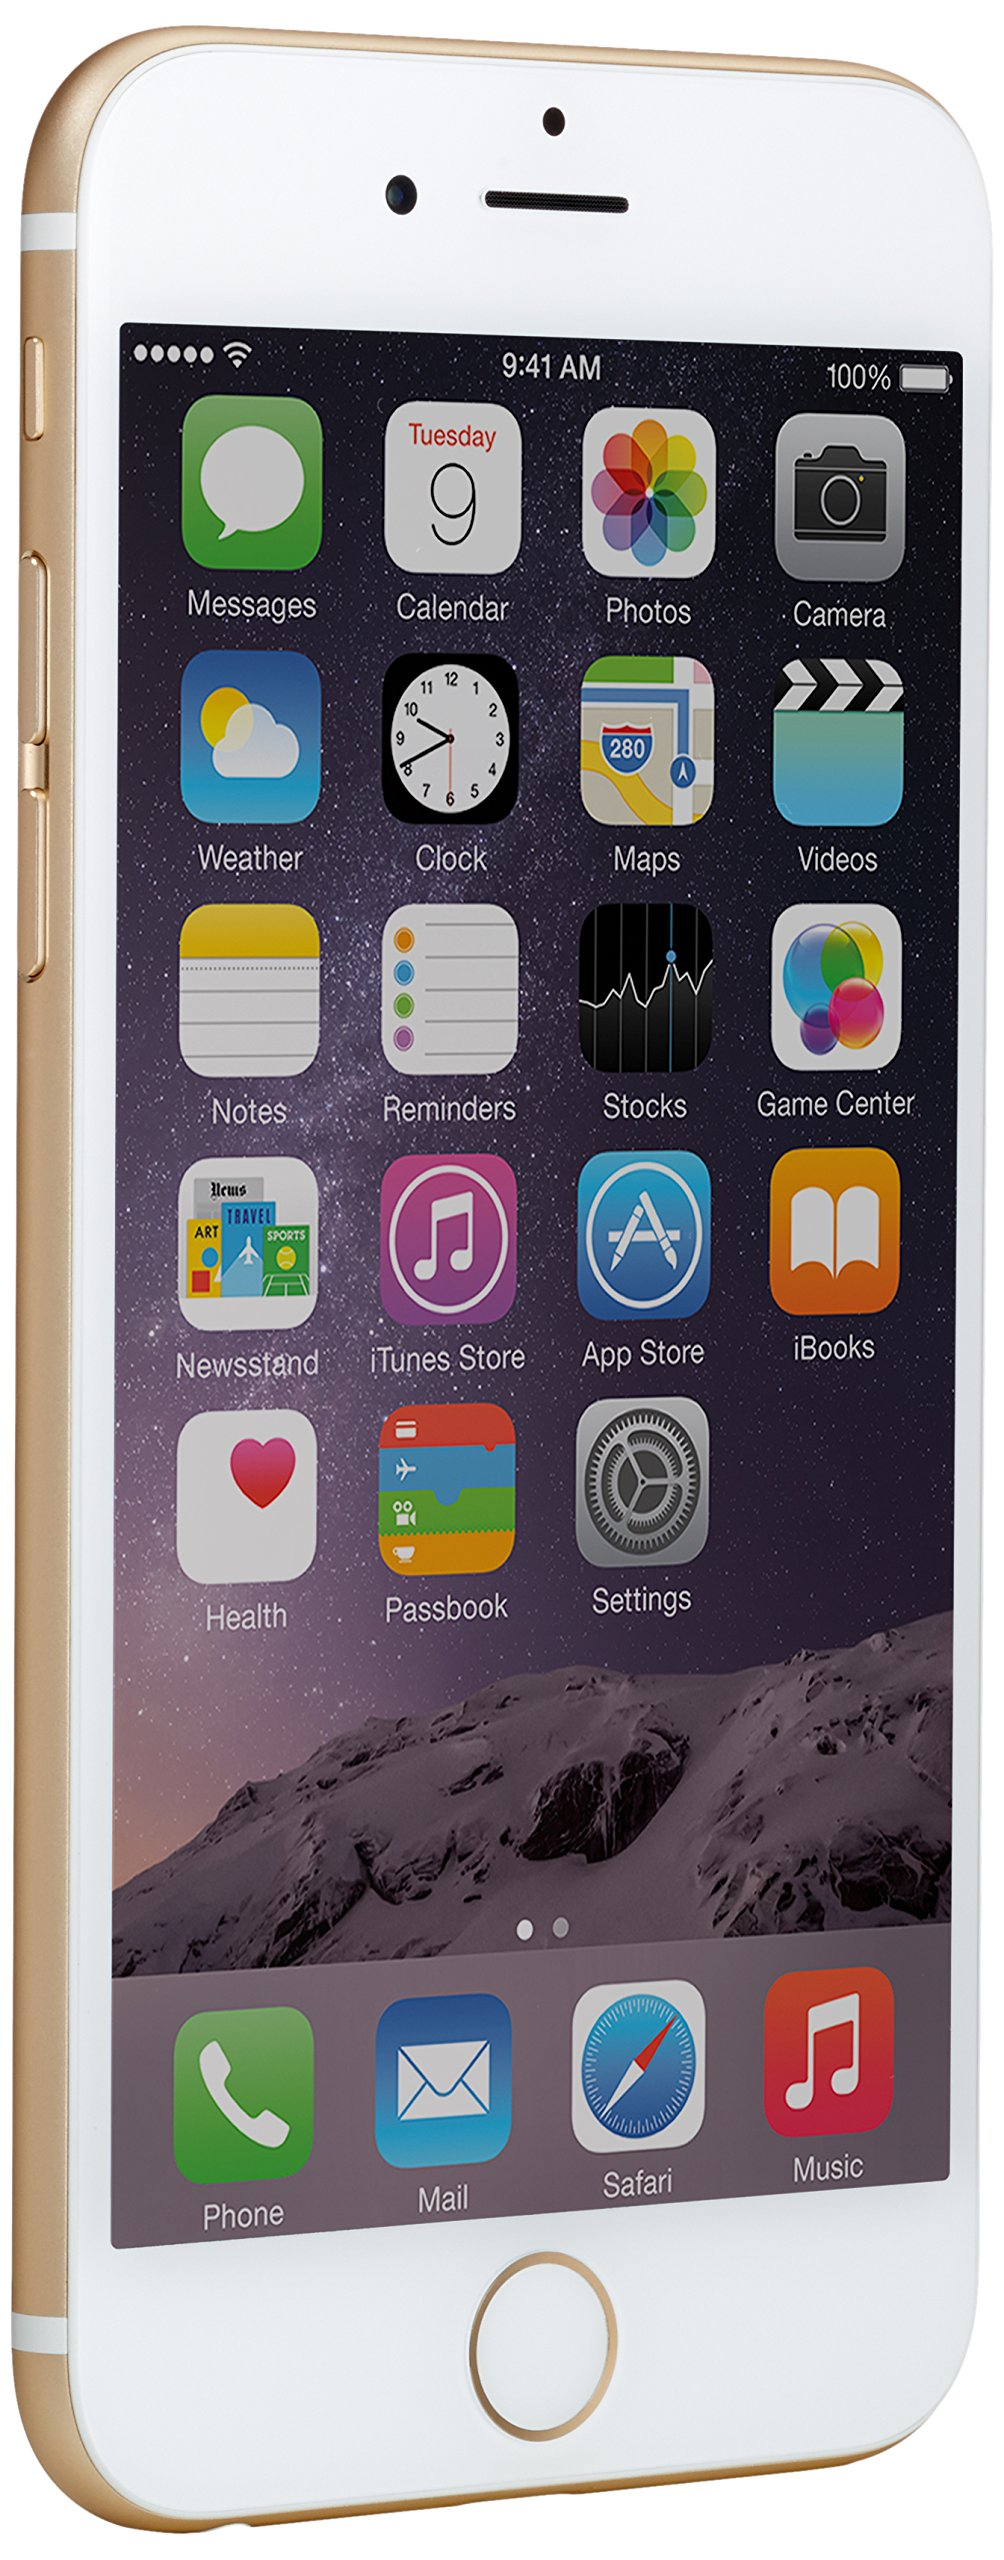 Apple iPhone 6 (GSM Unlocked), 16GB, Gold by Apple